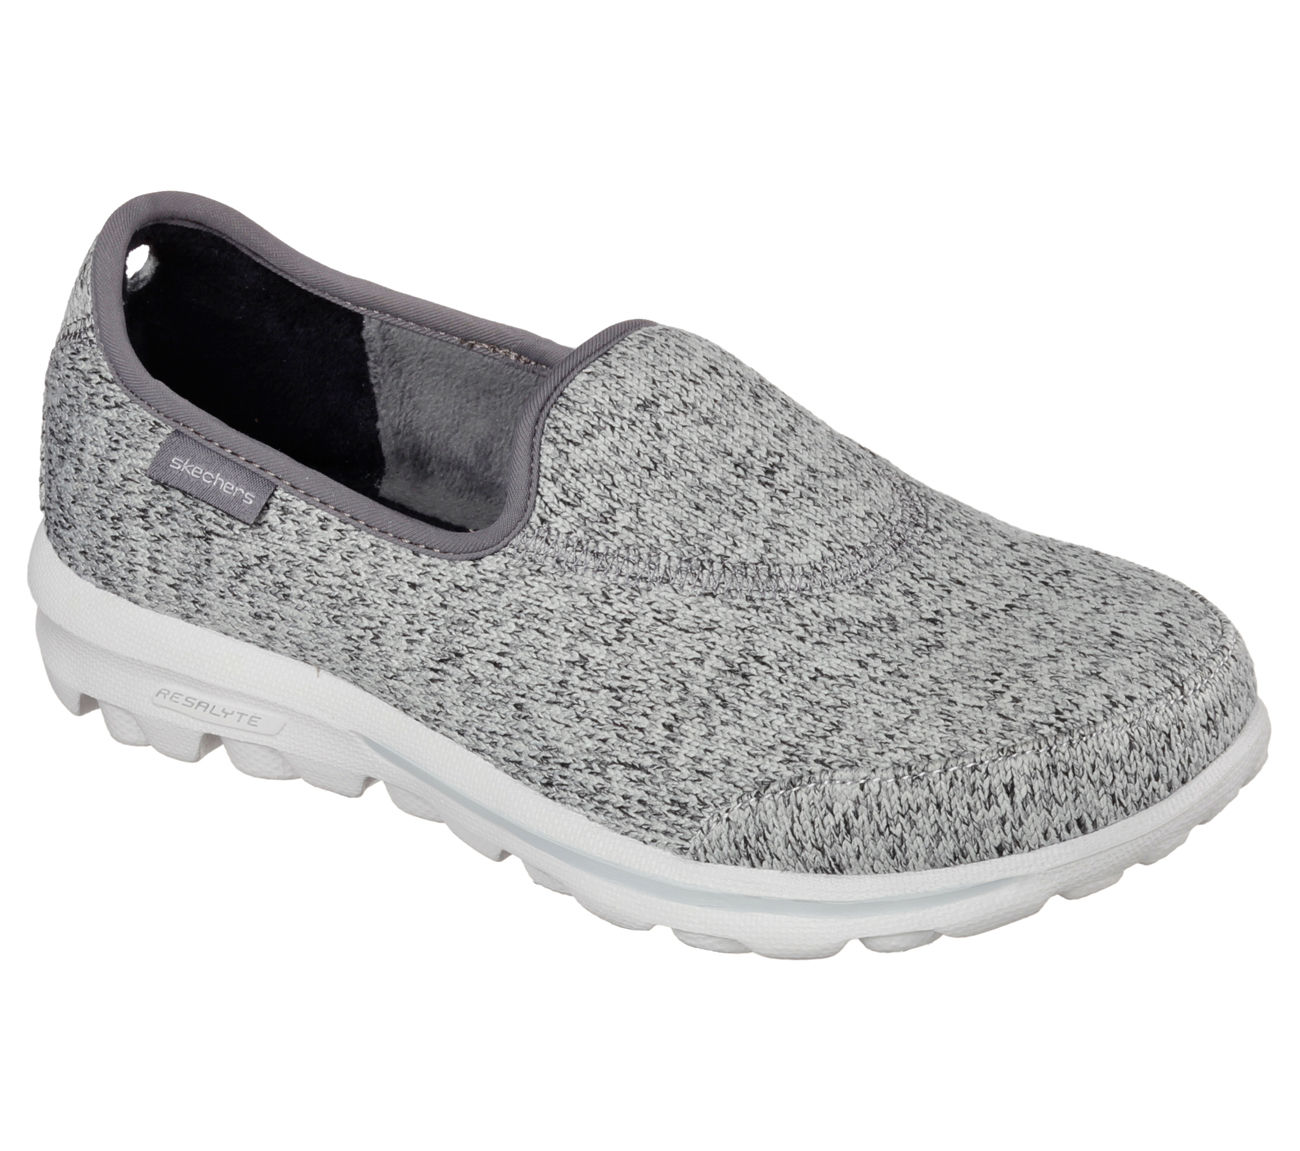 skechers go walk womens casual slip on memory foam shoes